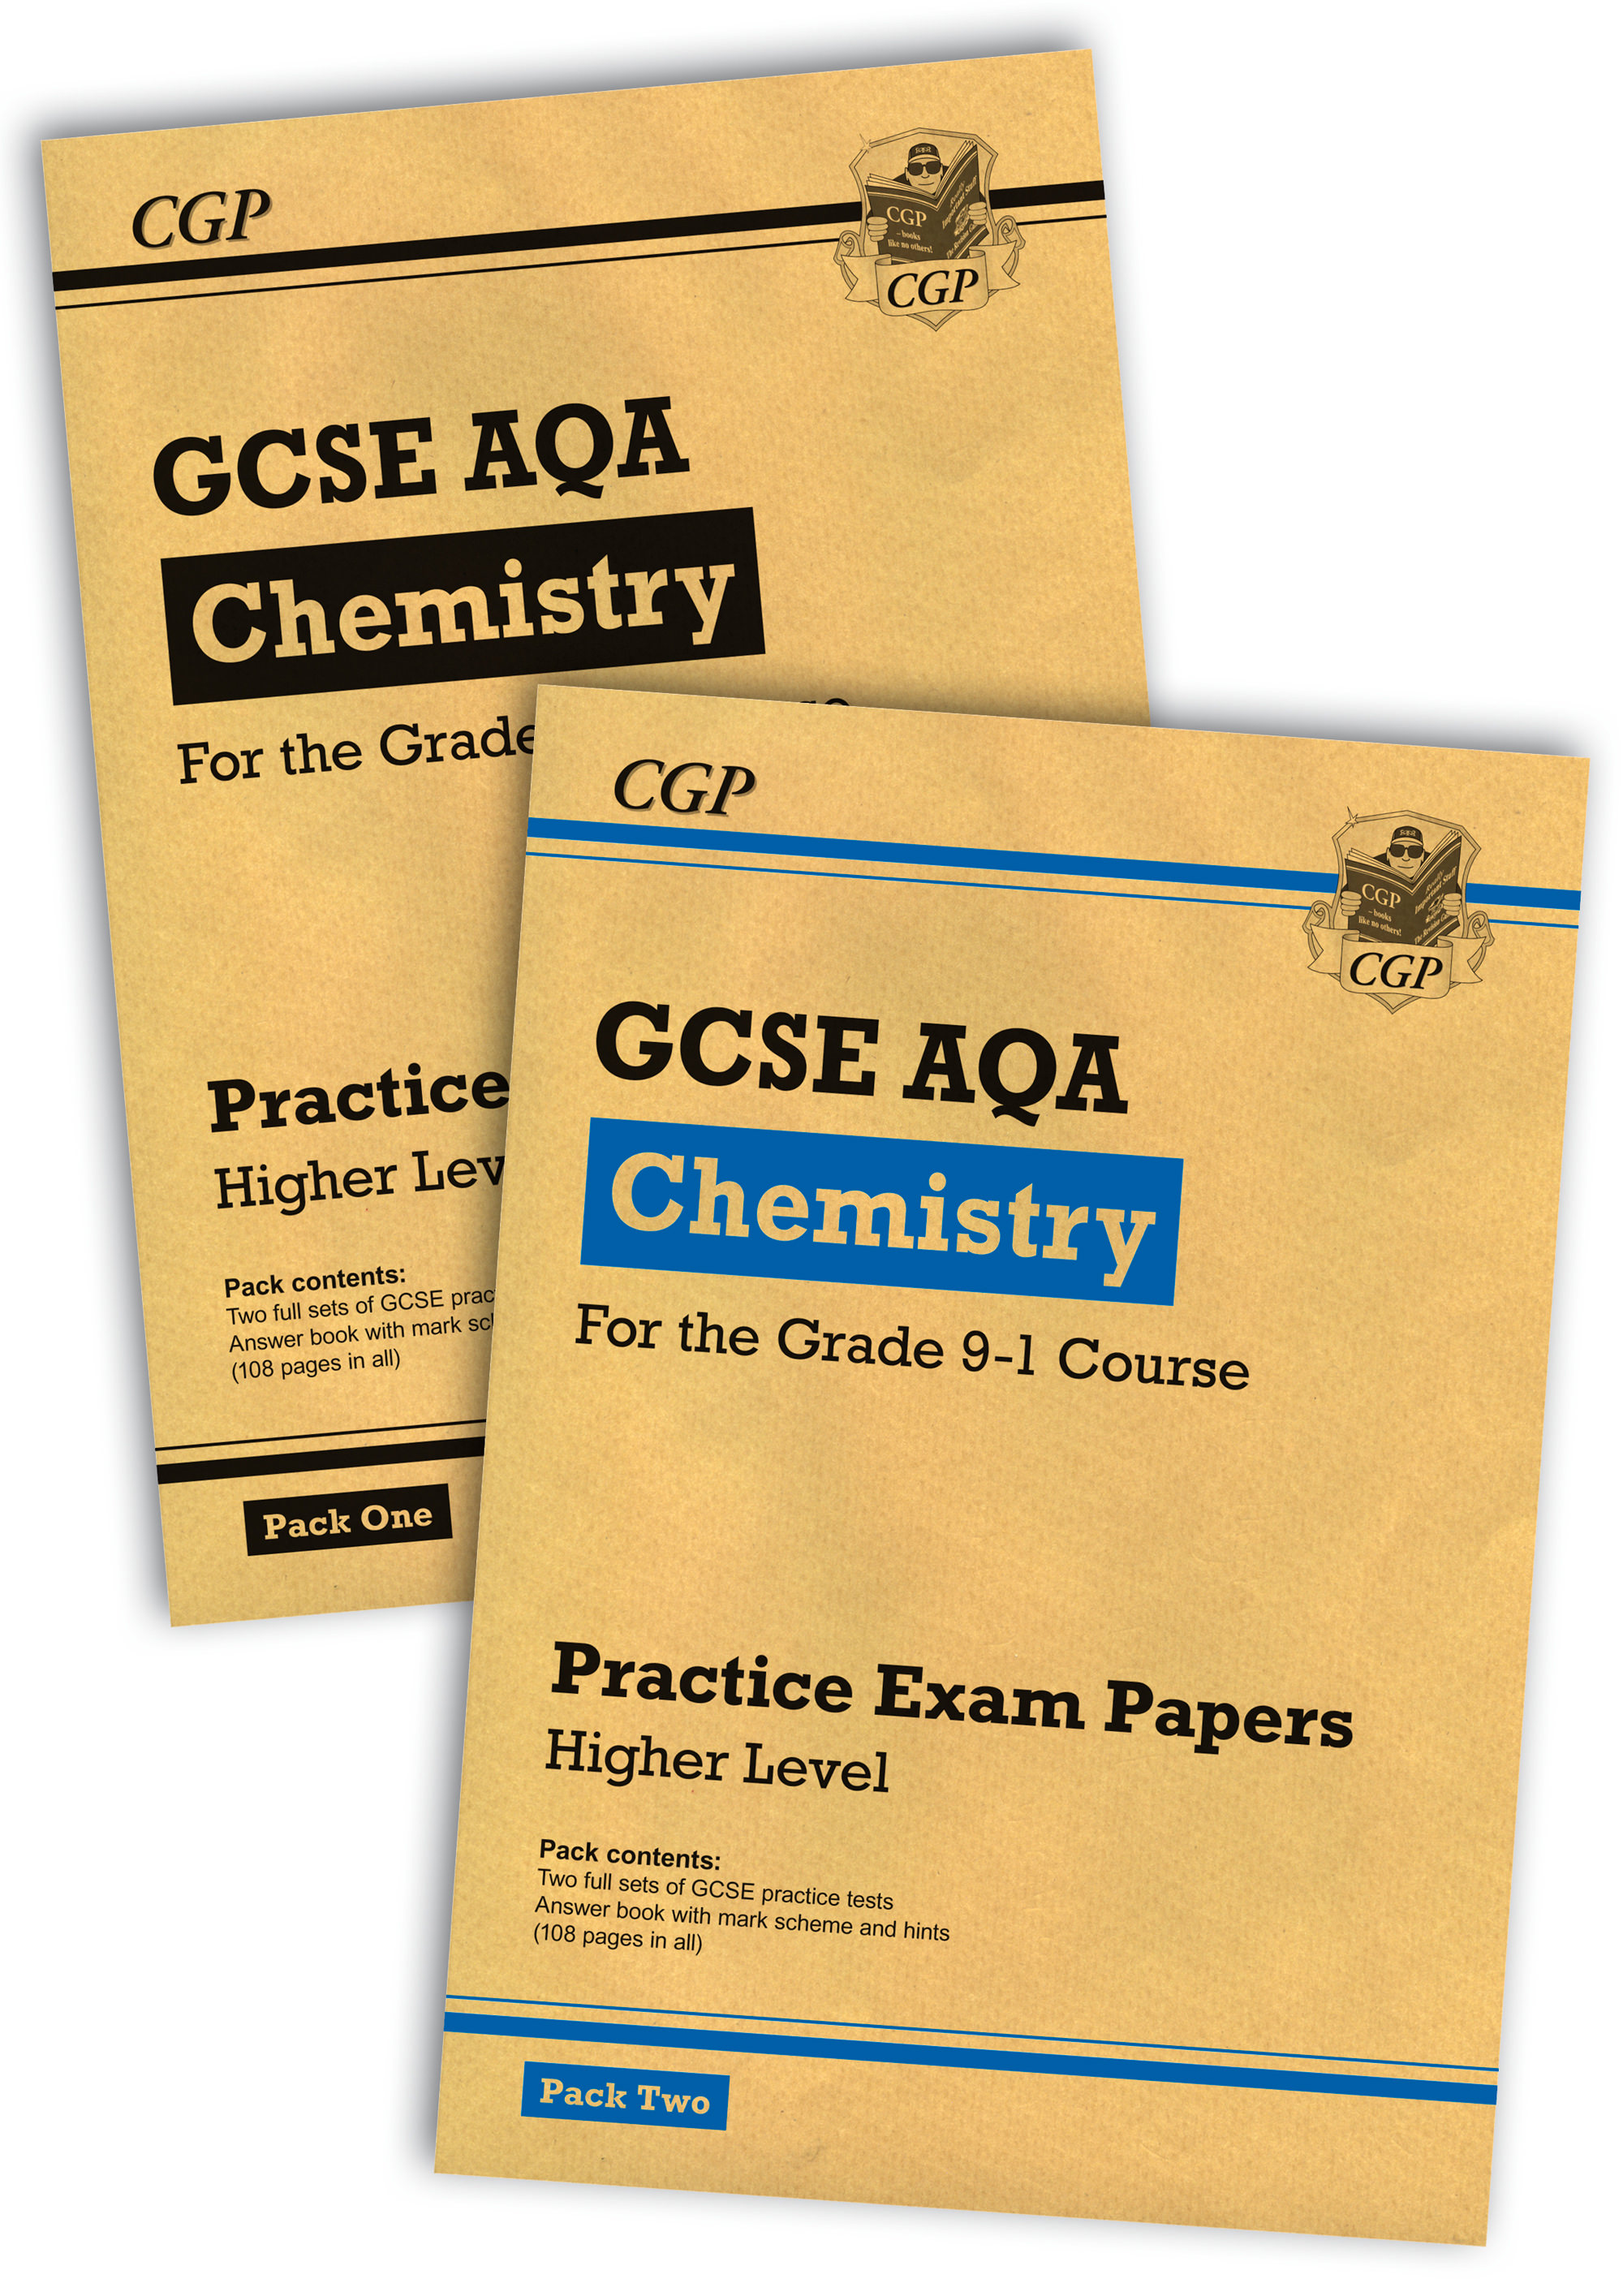 CAHBP41 - Grade 9-1 GCSE Chemistry AQA Practice Papers: Higher Pack 1 & 2 Bundle